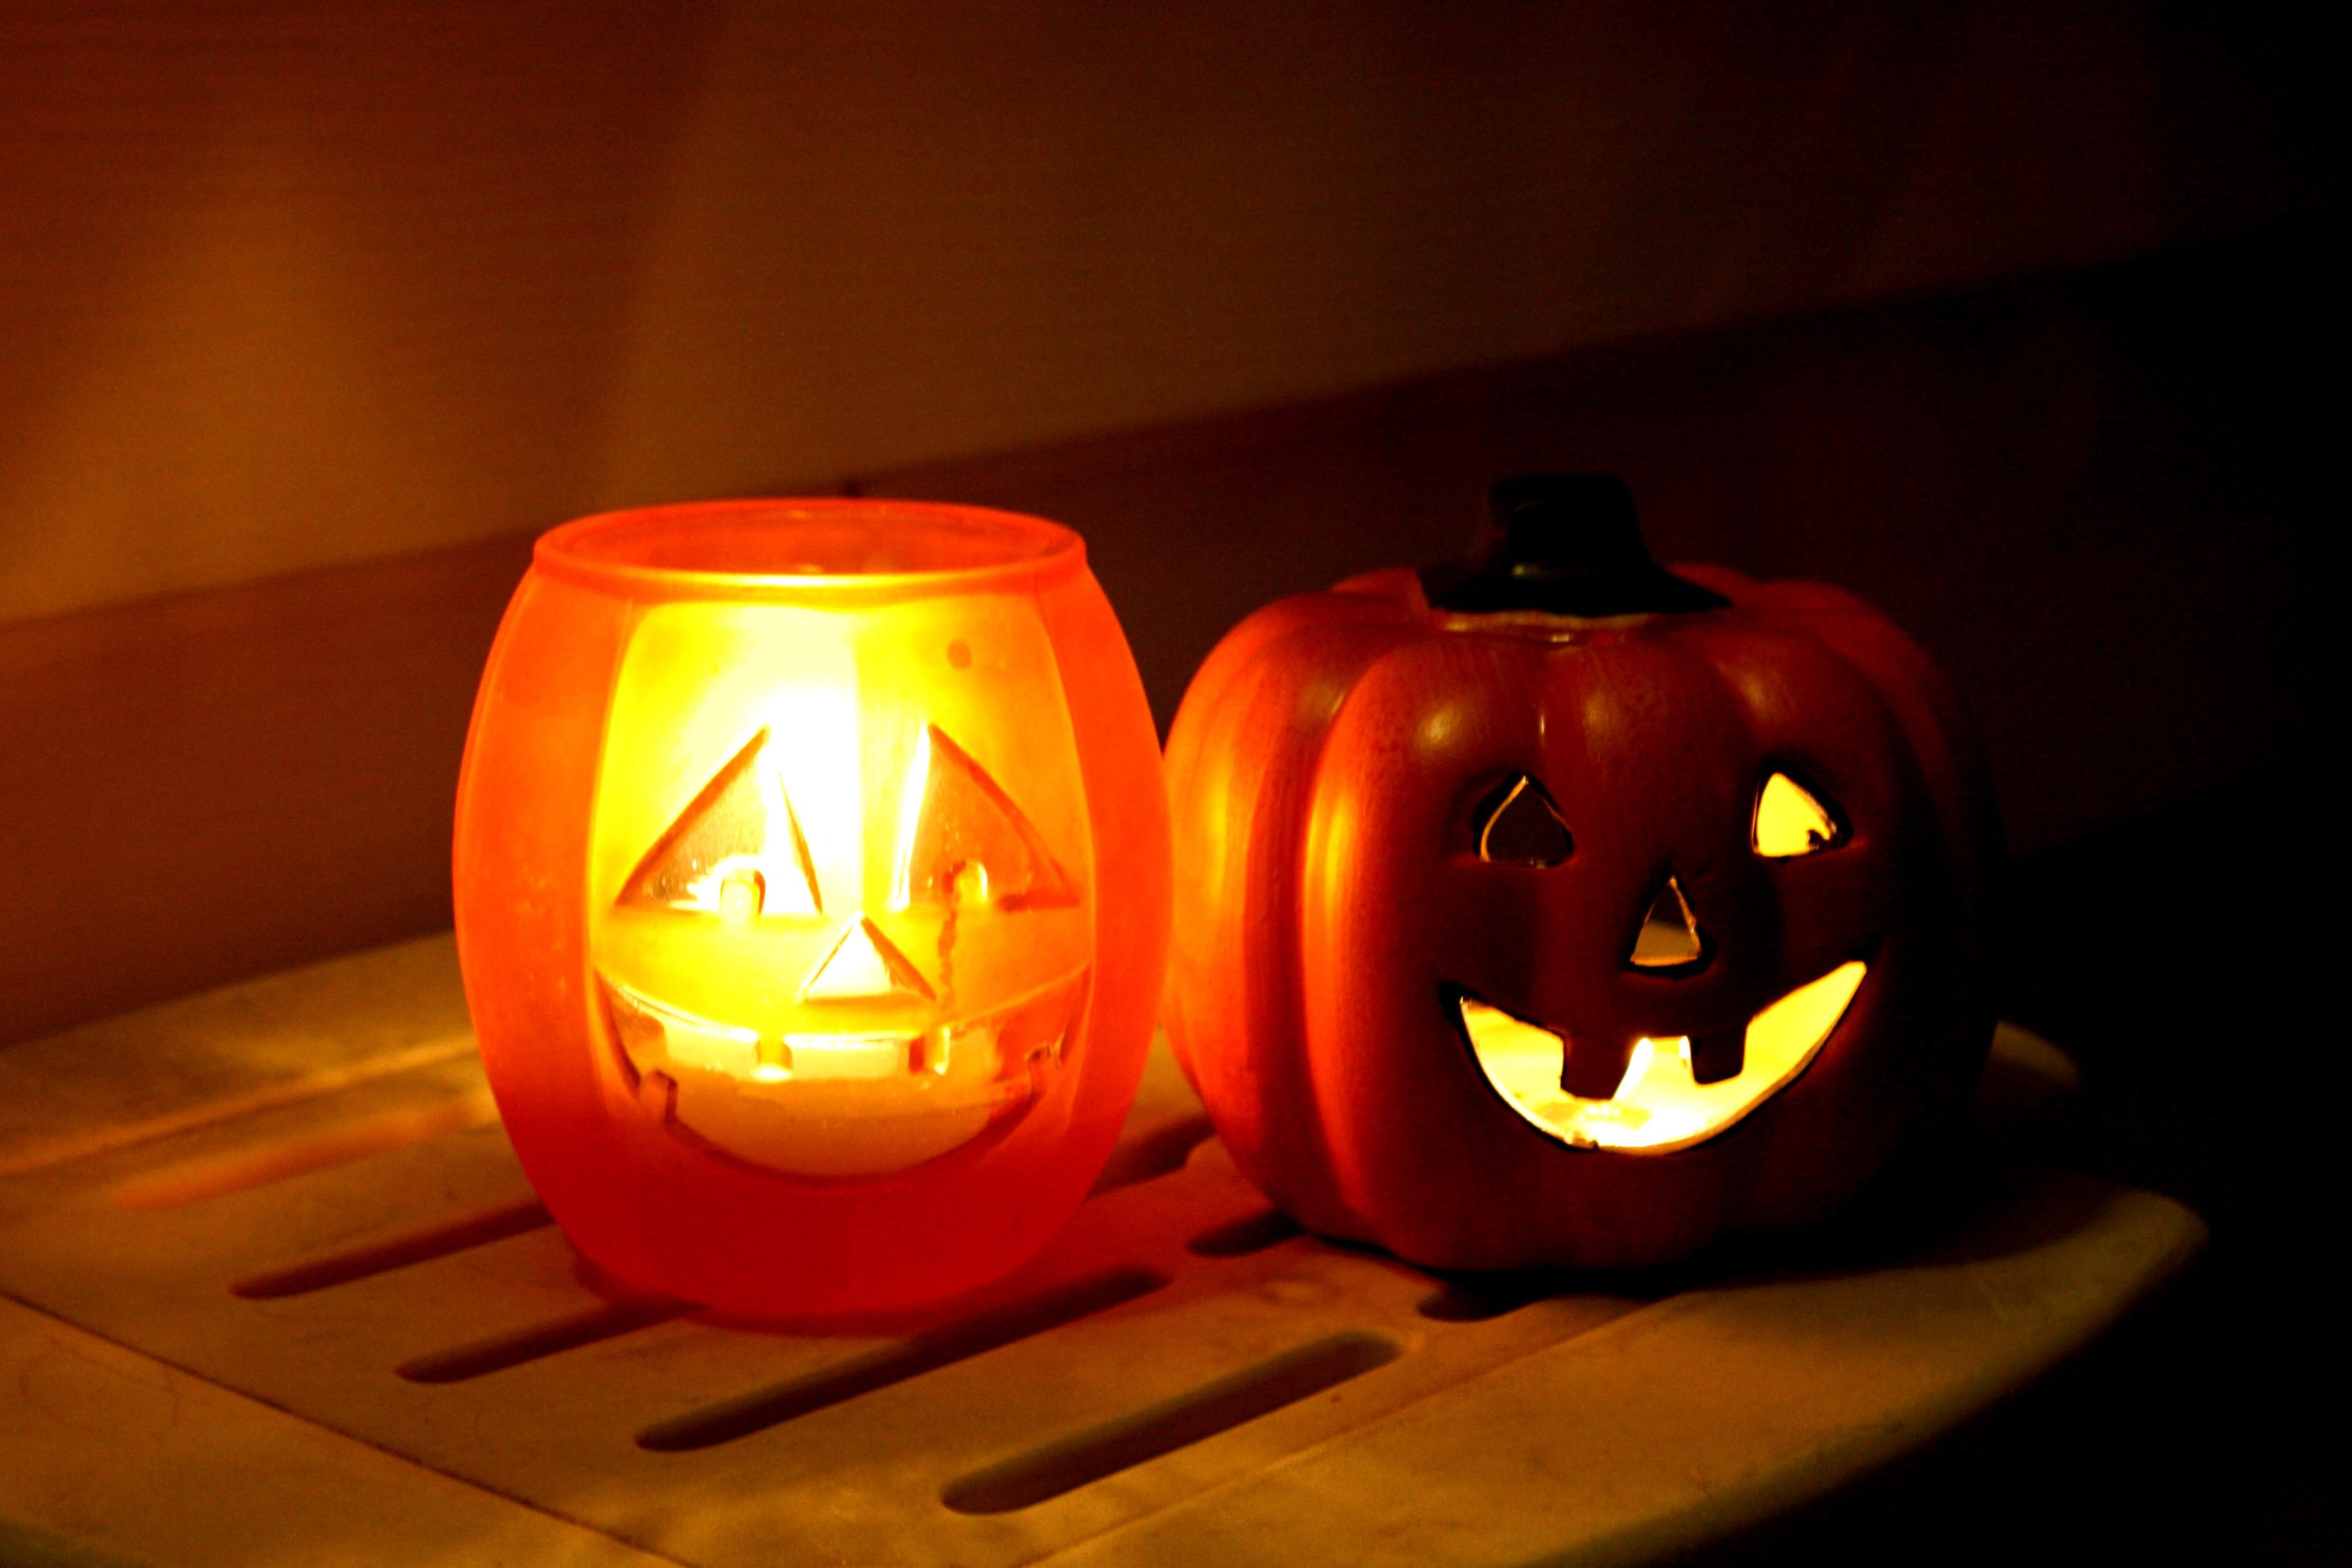 Halloween free images, public domain images